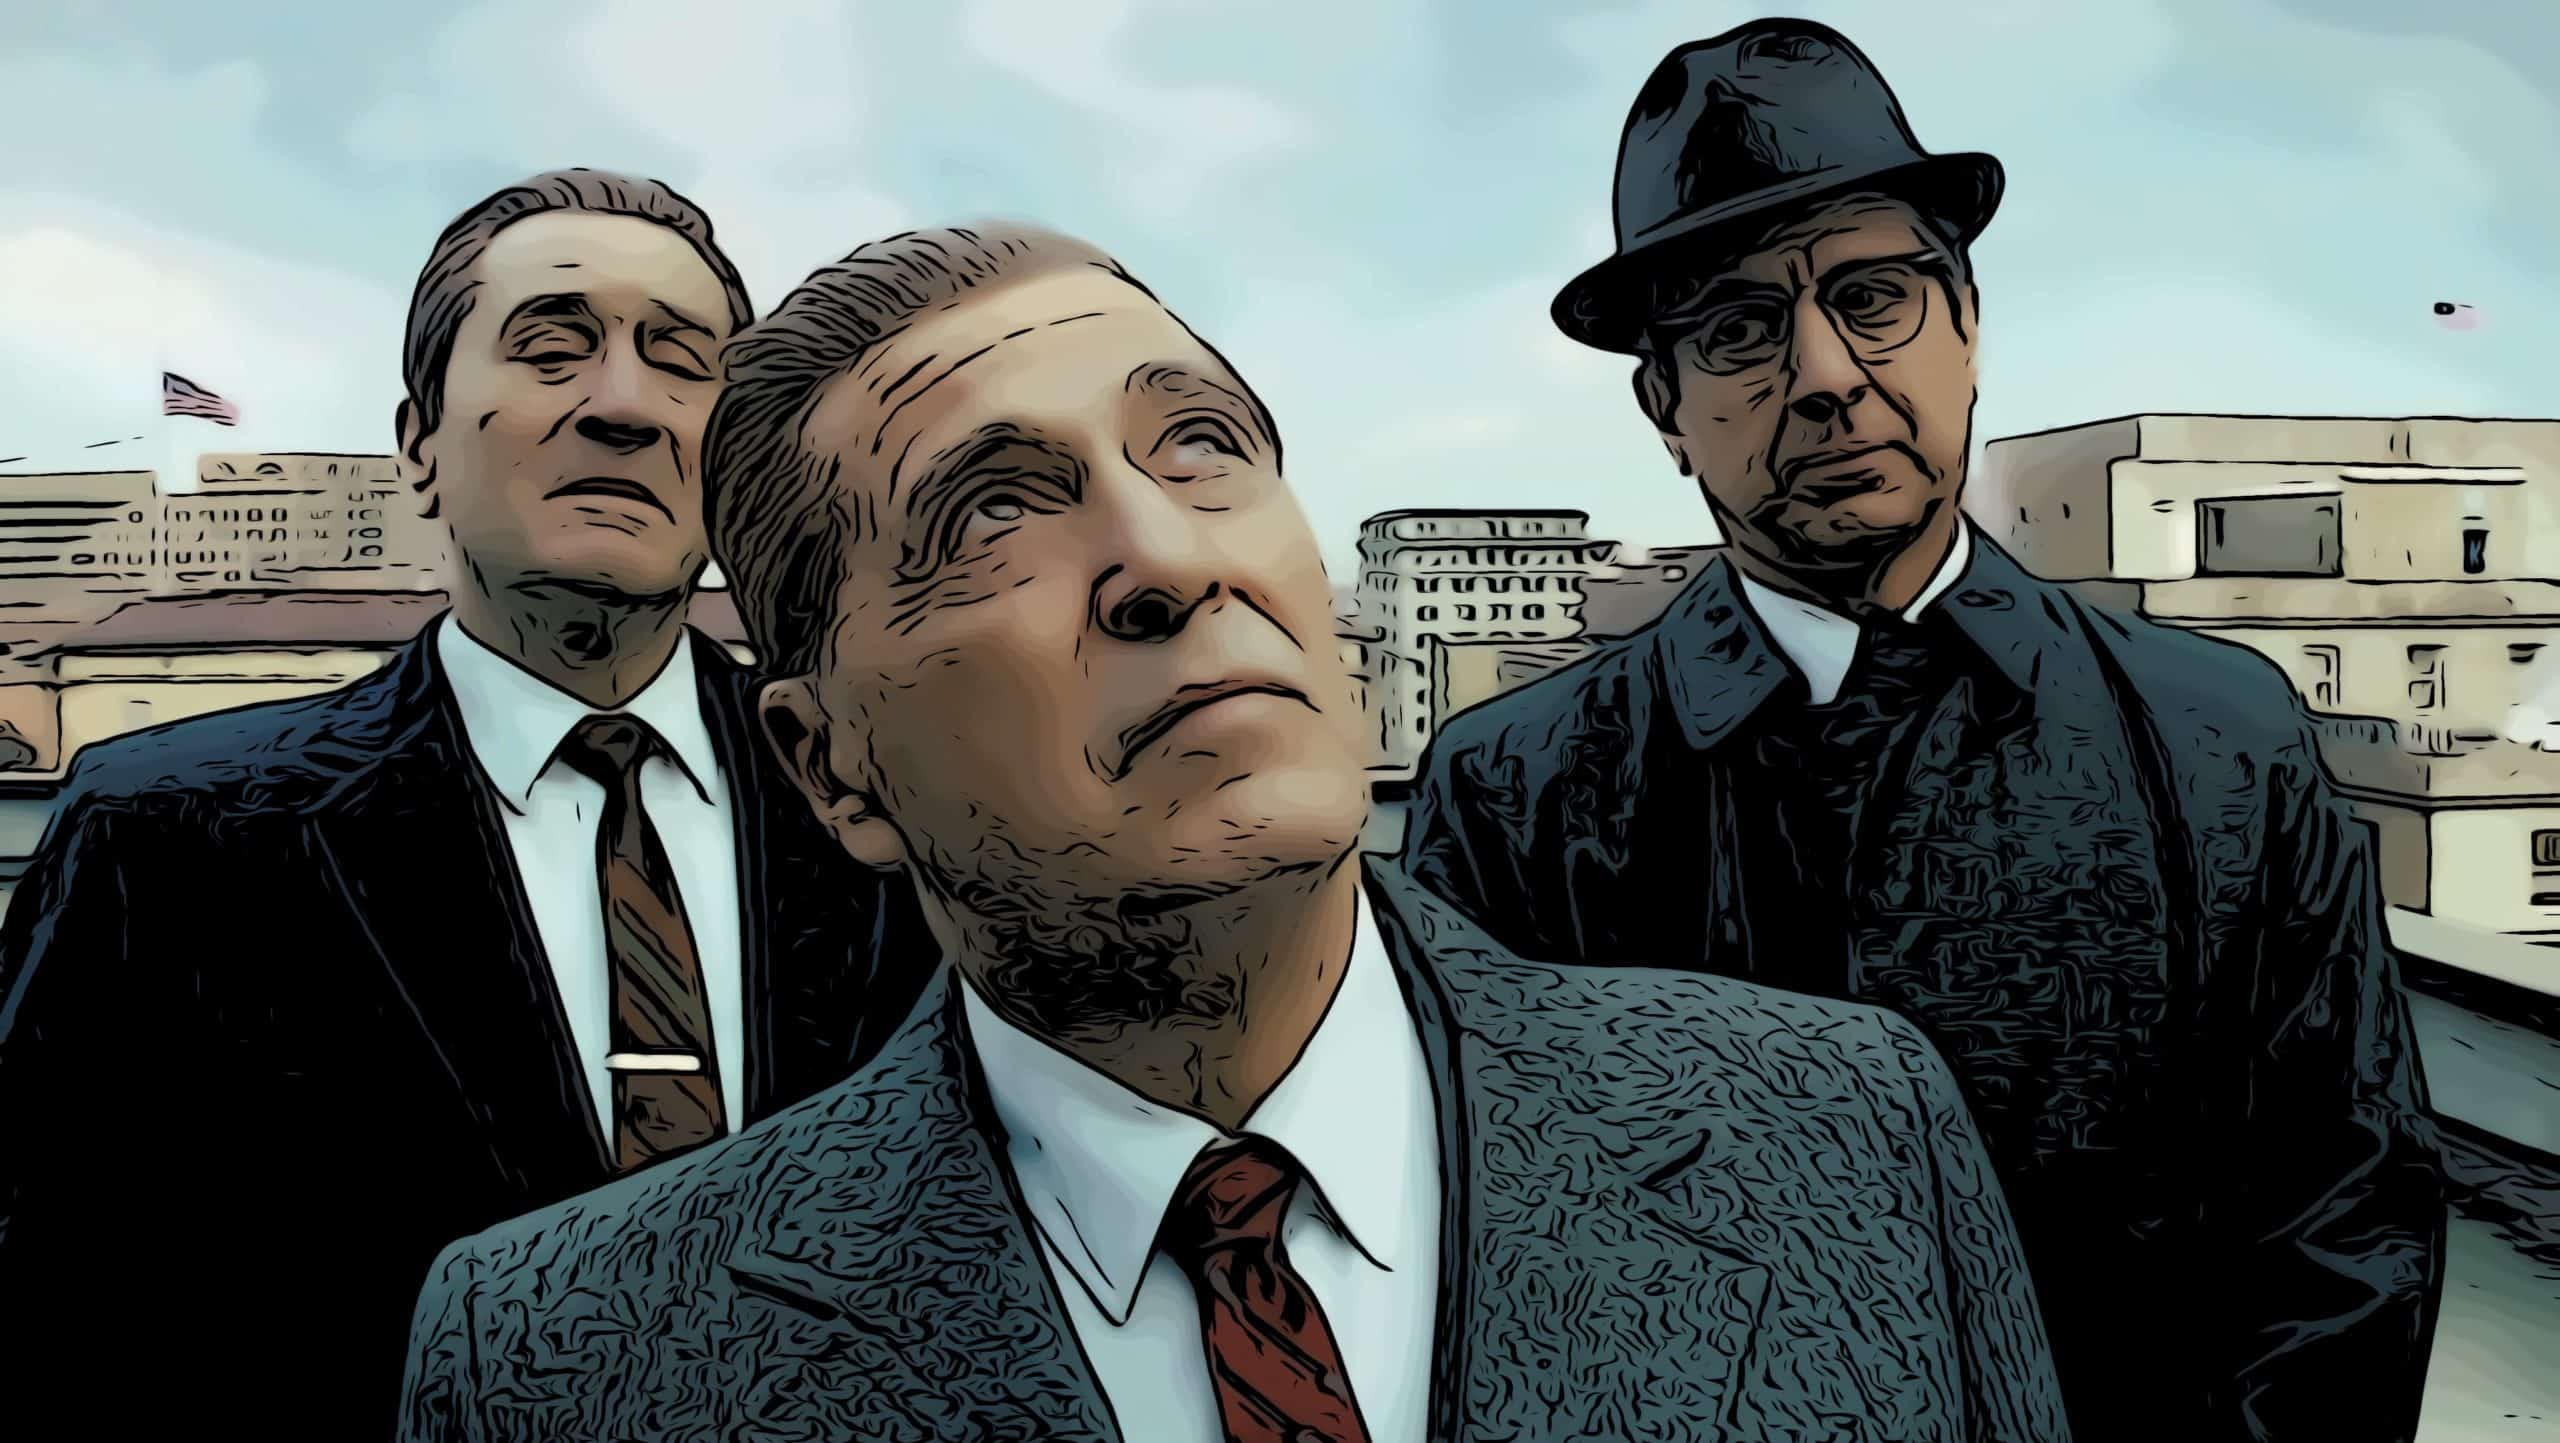 Scene from The Irishman for highest rated movies on Netflix post.